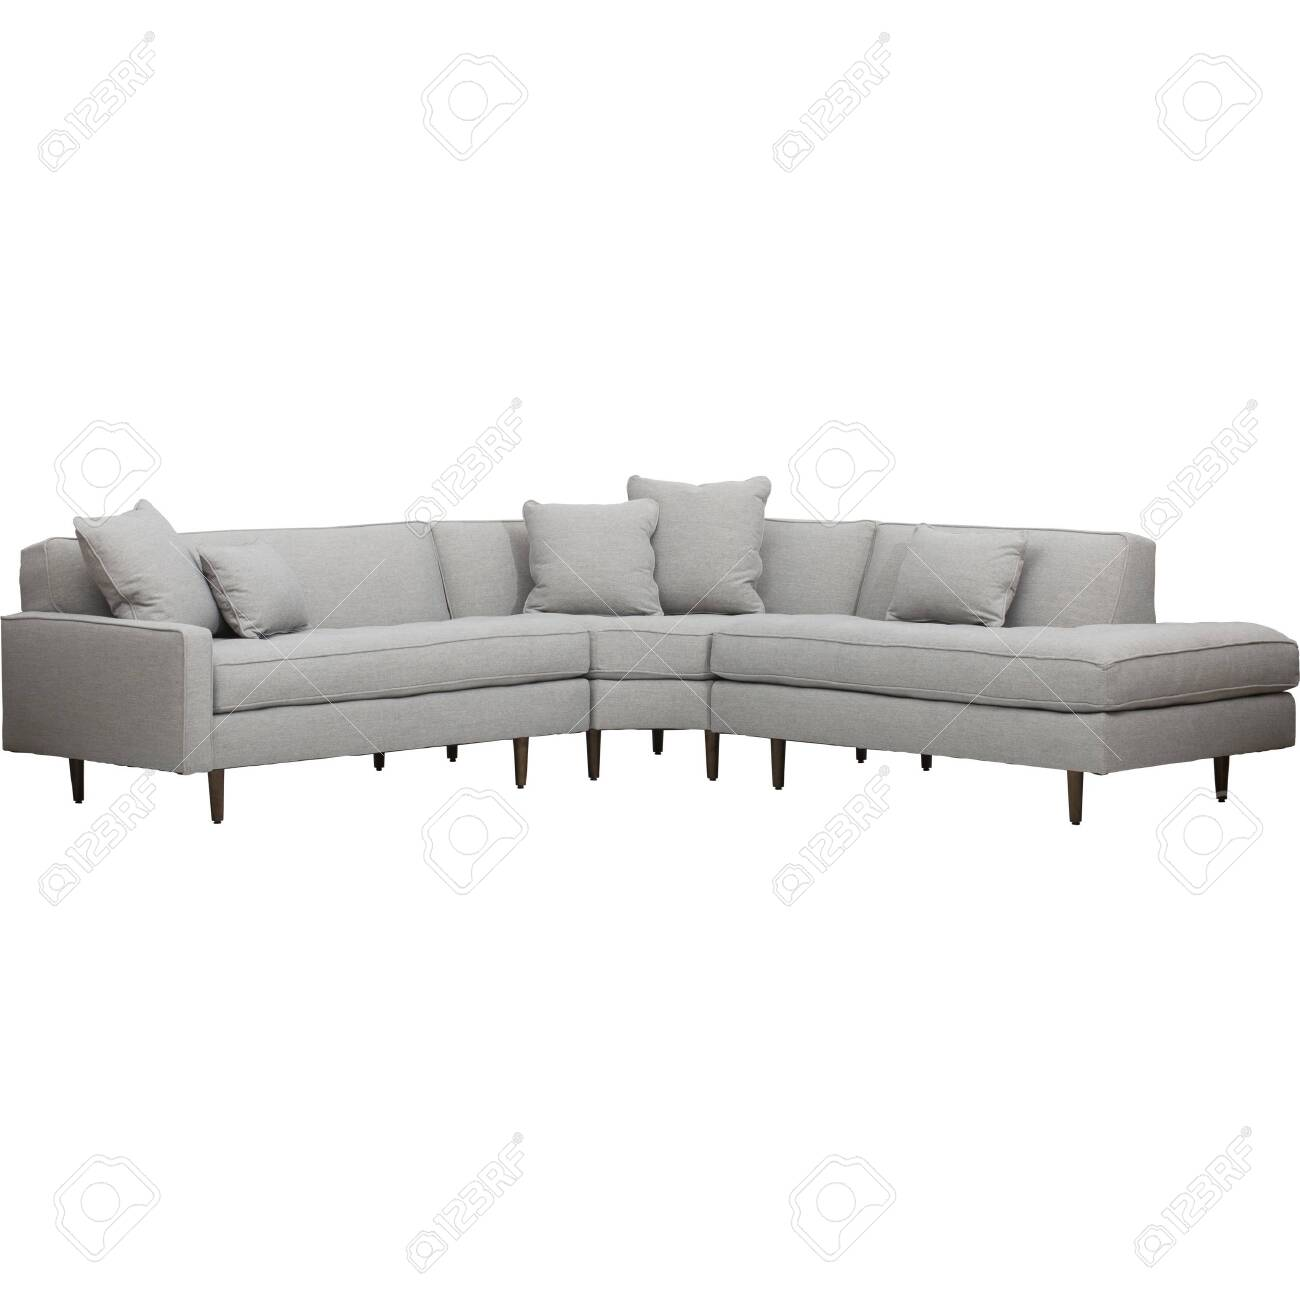 full size of chair stunning sectional couches with recliners